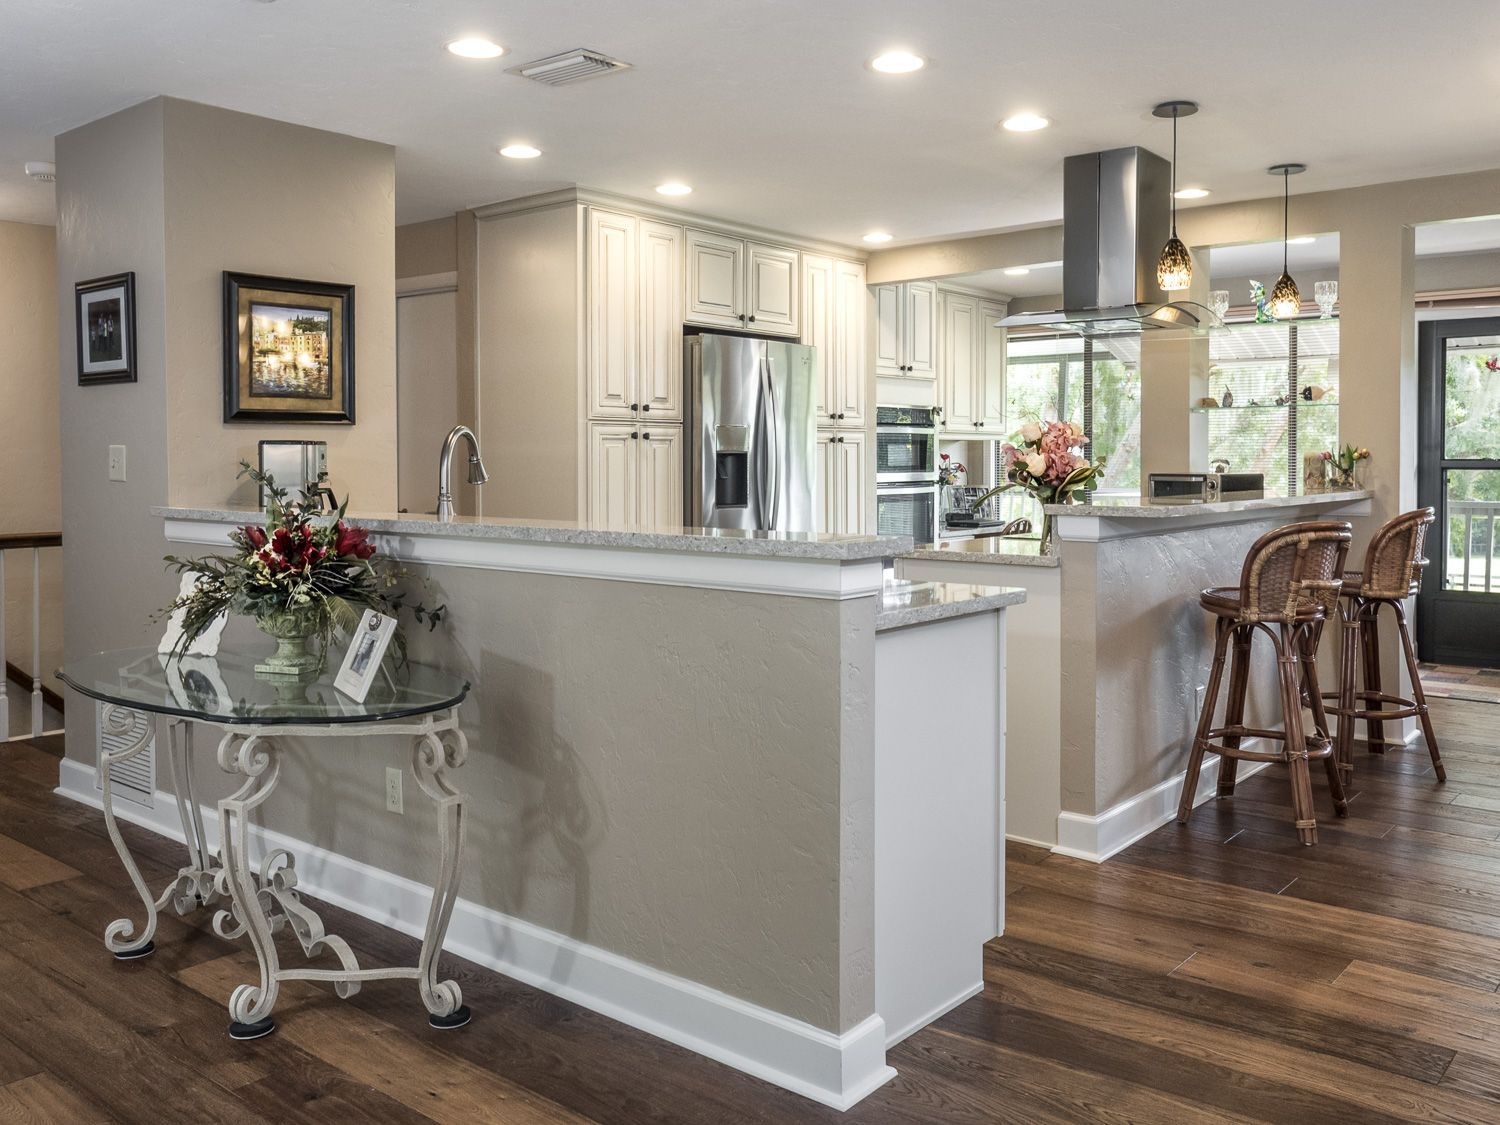 Best Open Kitchen In Cream Colored Cabinets Wood Floors 400 x 300